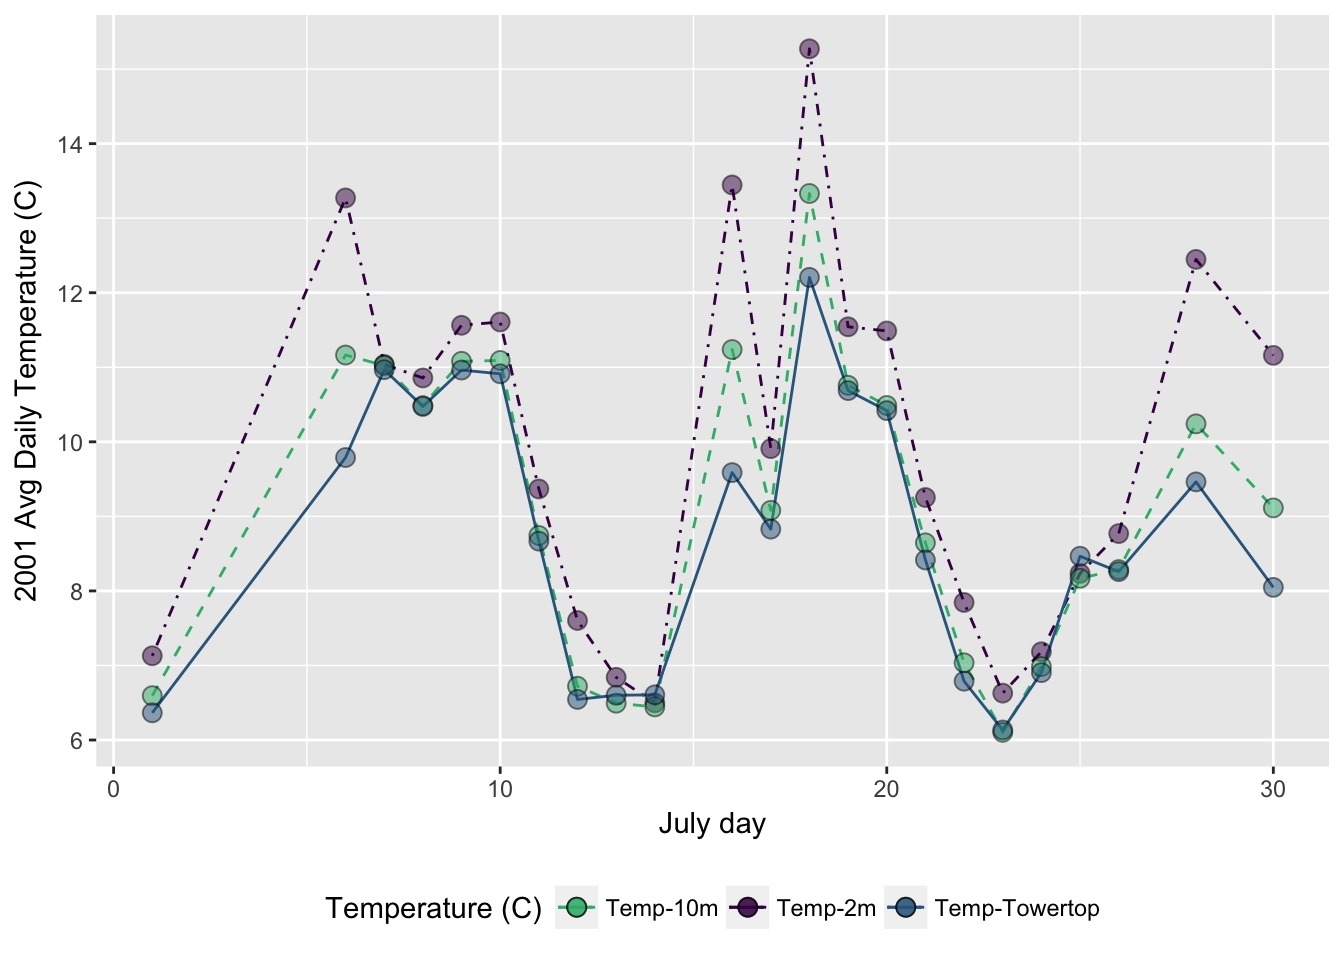 Dates & Times In R